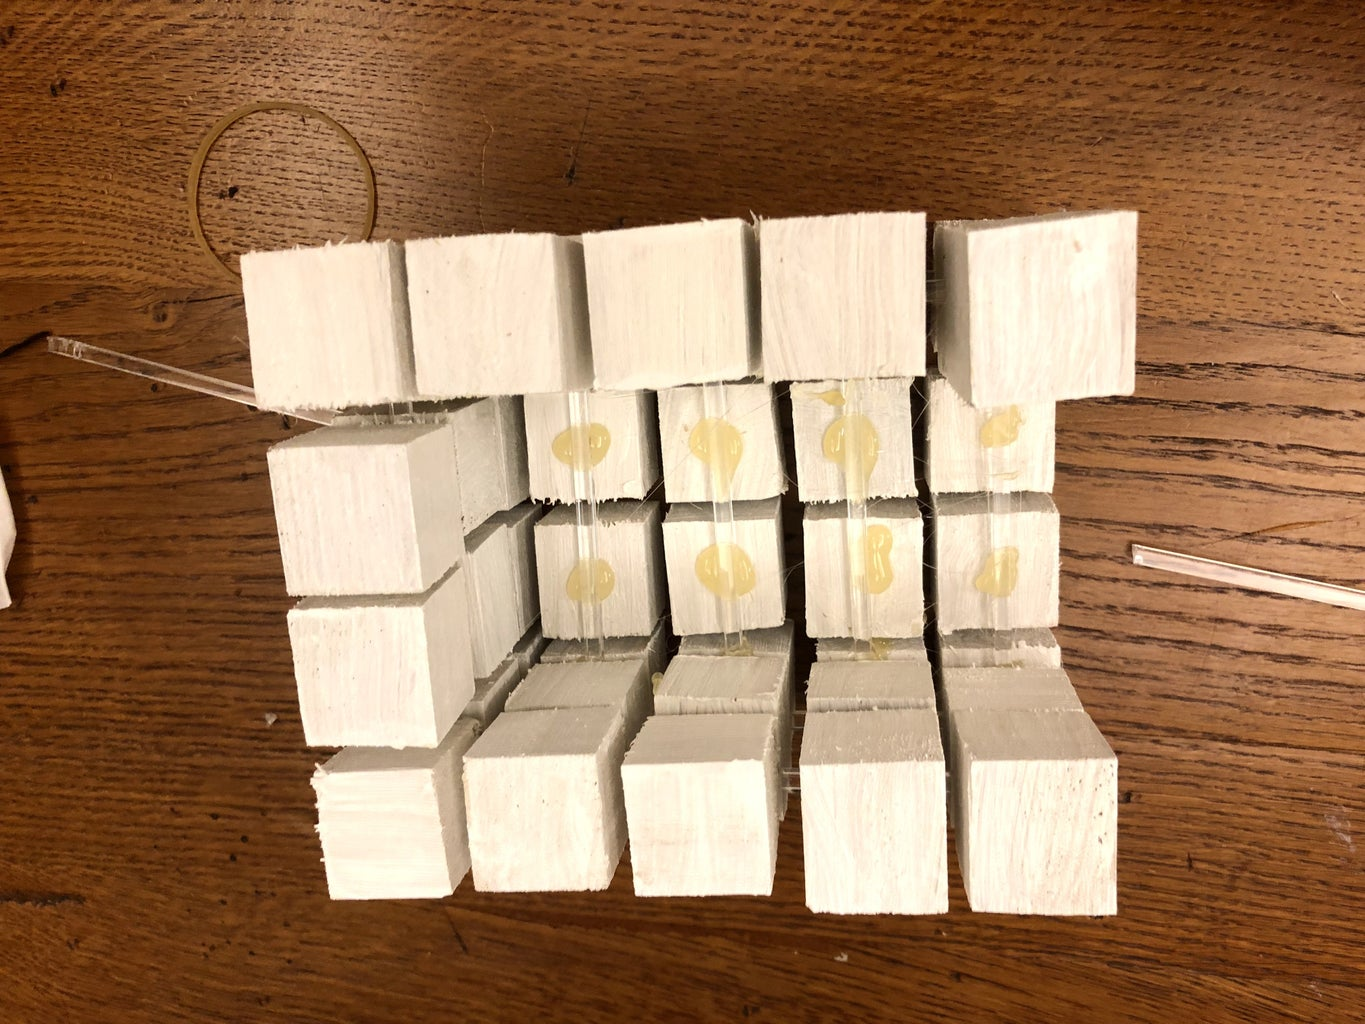 Design of the Cube Structure